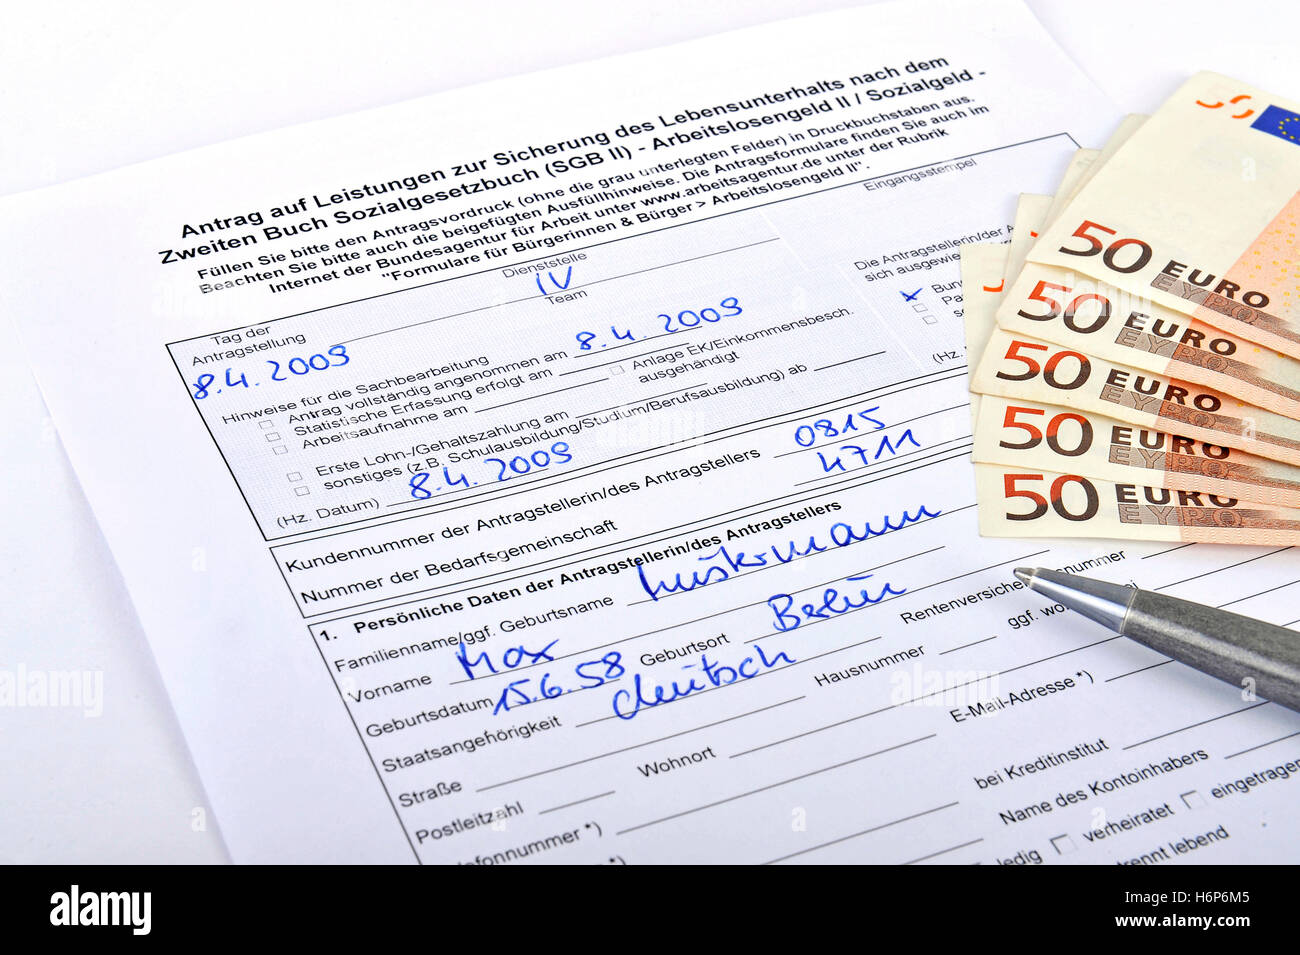 application for unemployment benefits ii,hartz iv - Stock Image